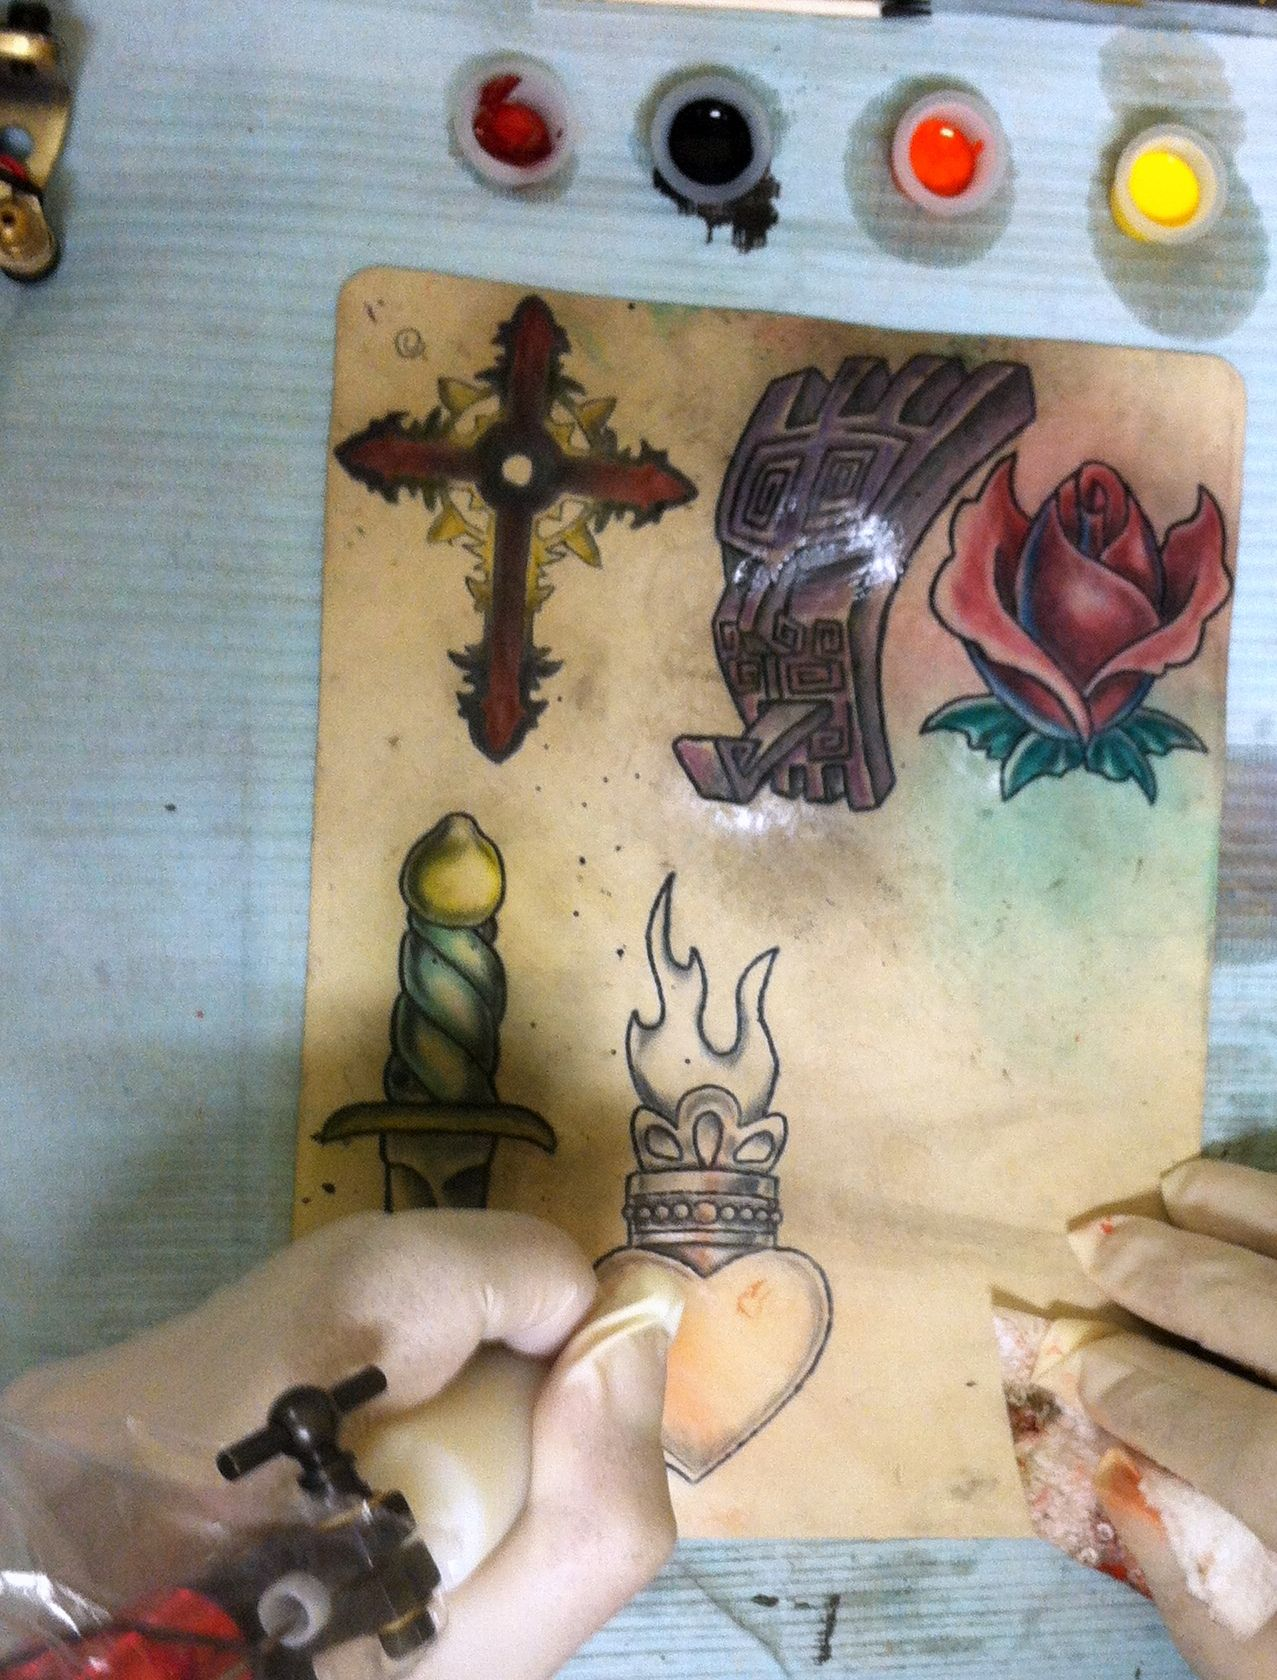 How to design a new school tattoo leaftv - Tattoo Apprenticeship With Guaranteed Placement If You Want To Become A Tattoo Artist Take A Look At Our Alternative Tattoo Apprenticeship Programs